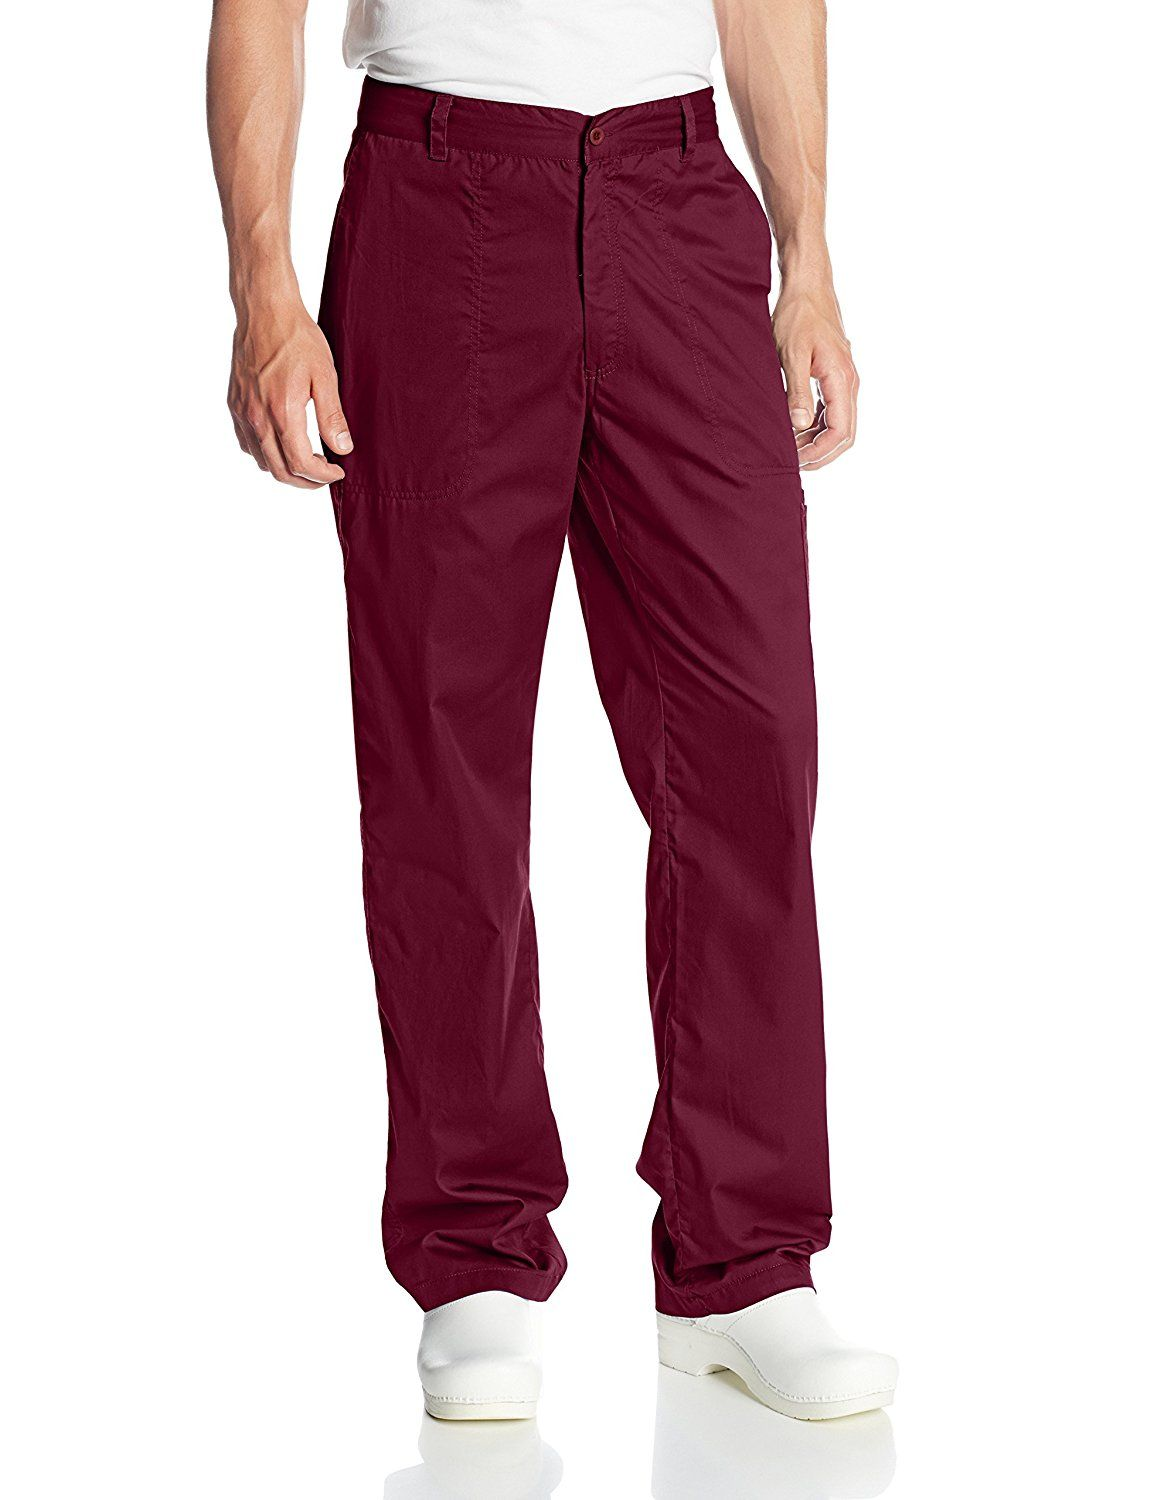 ICU by Barco Men's Tall 5 Pocket Scrub Pant With Zip Fly